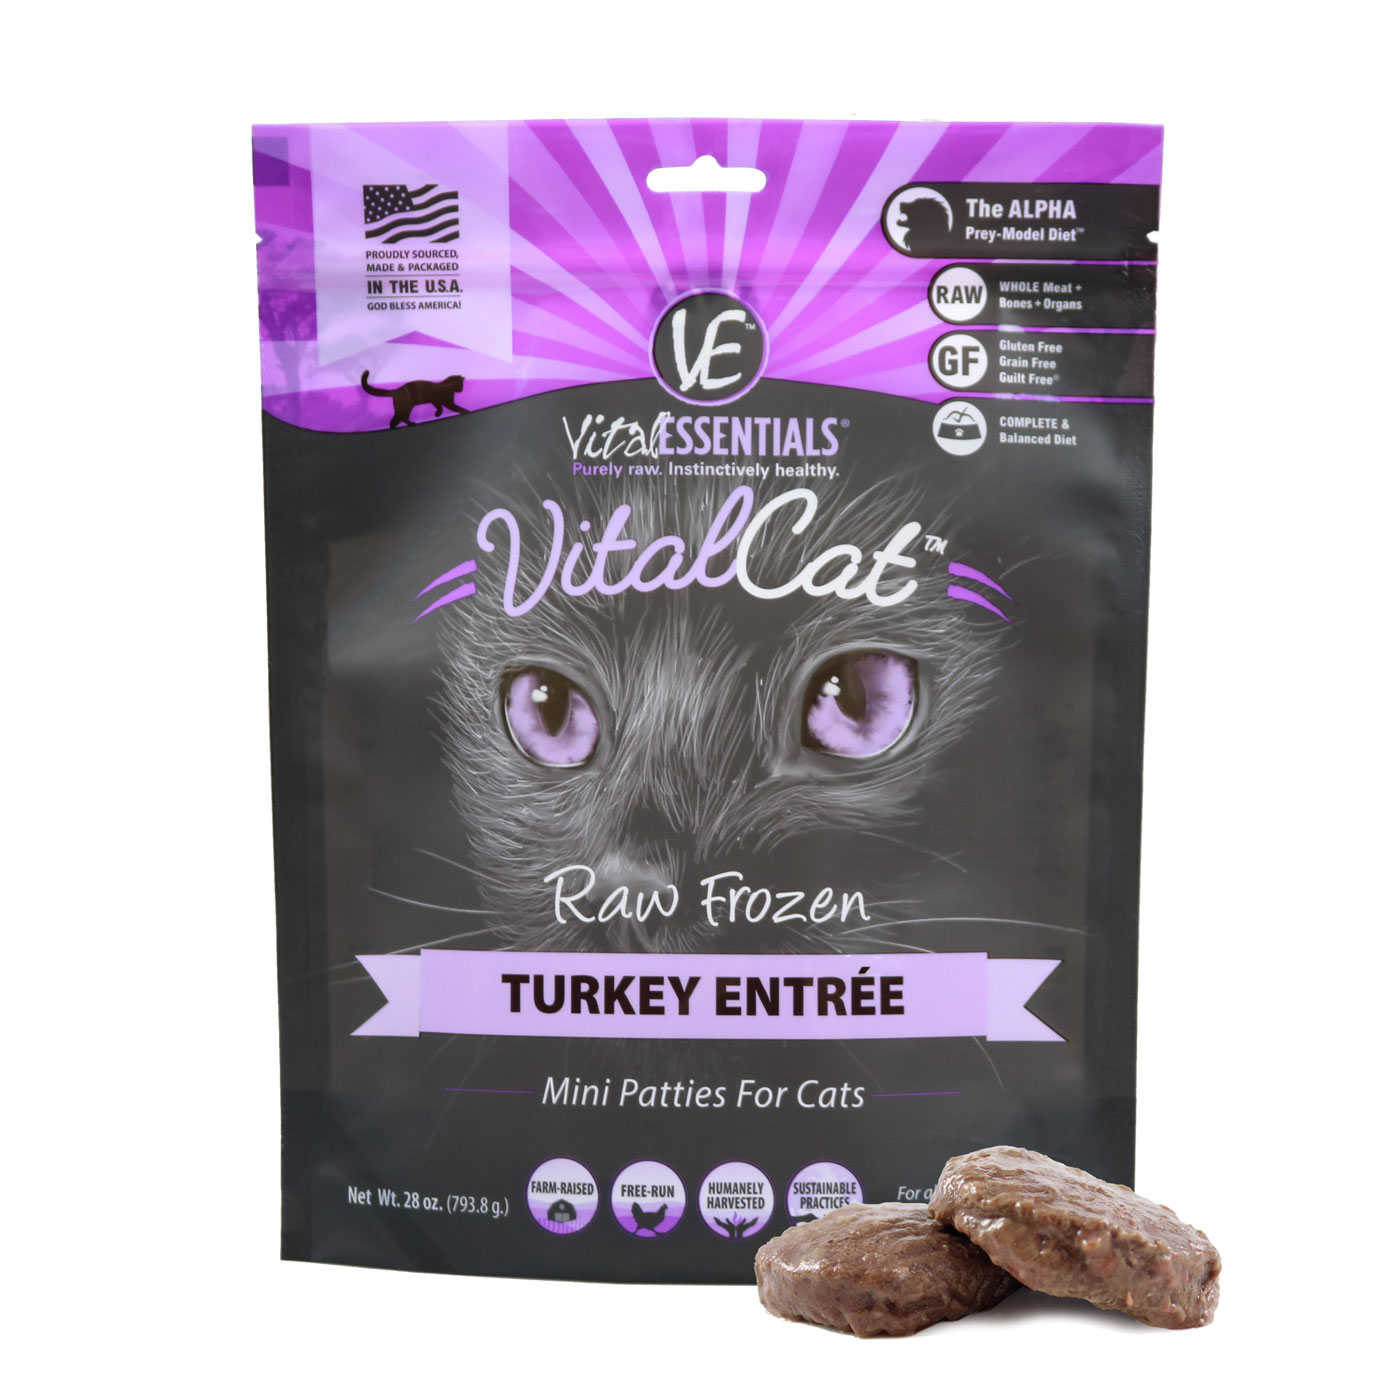 Vital Essentials Vital Cat Turkey Mini Patties Raw Frozen Cat Food Image